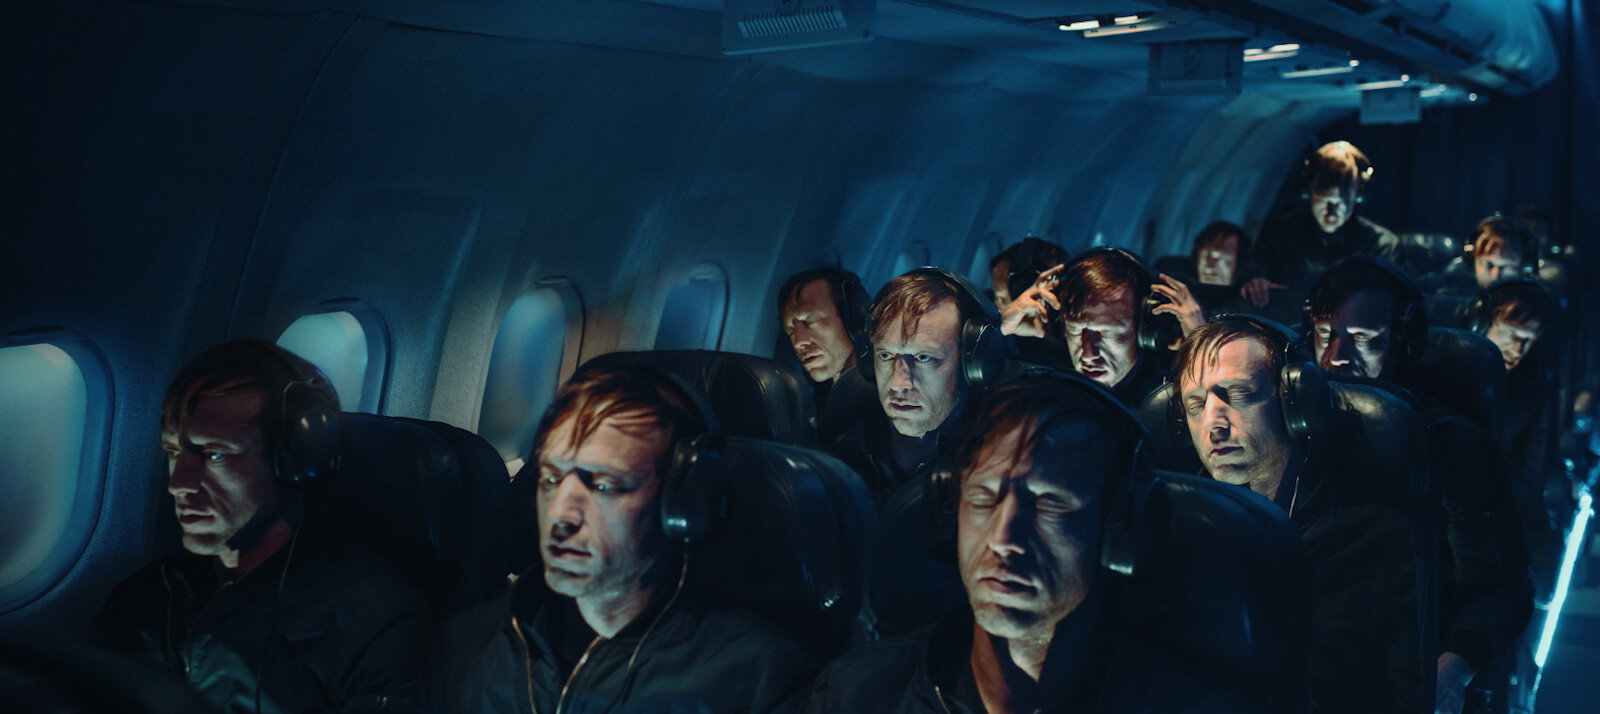 Flight promotional image of people sitting in an airplane